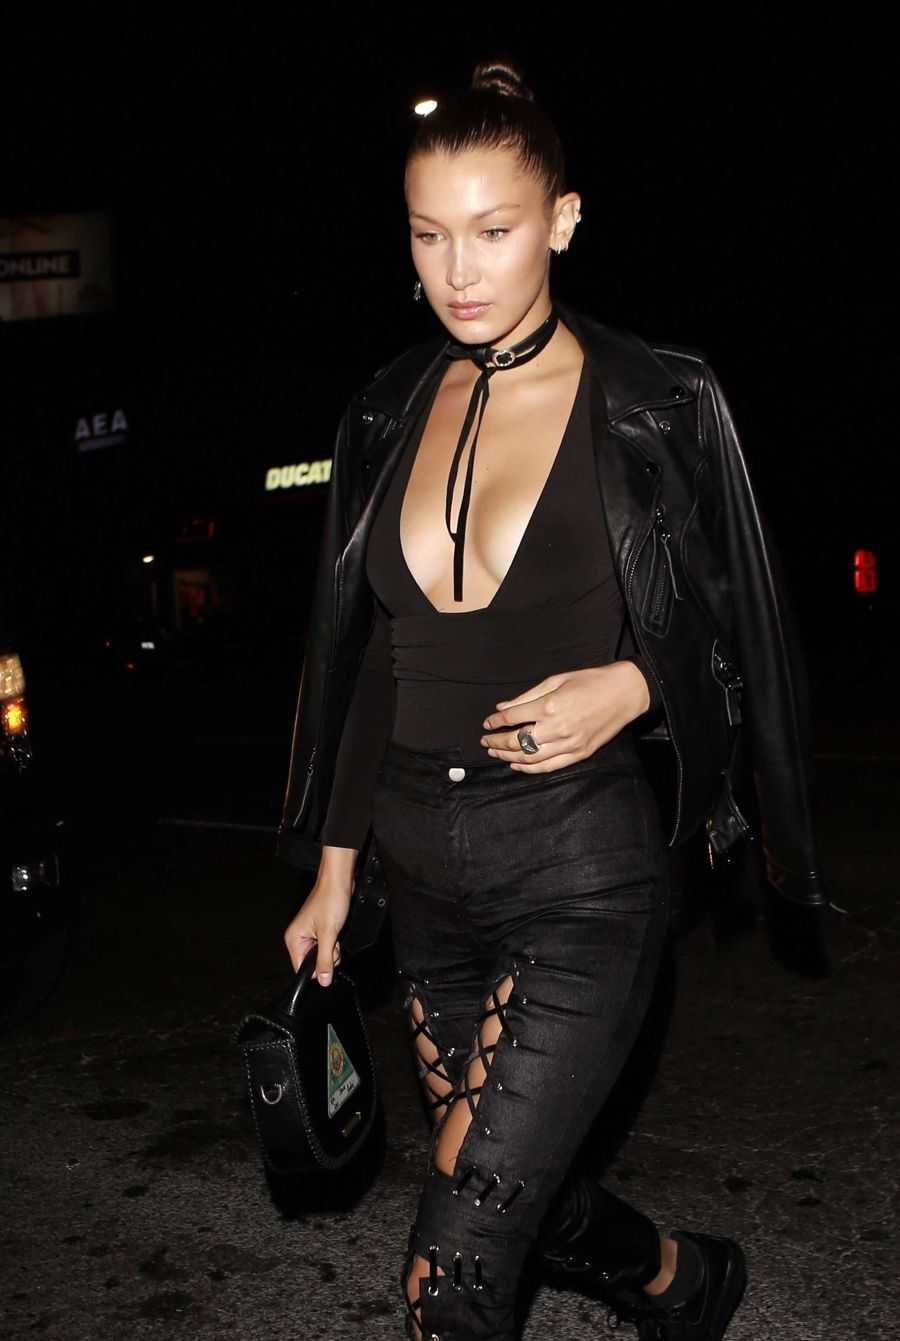 Bella Hadid at The Nice Guy in West Hollywood